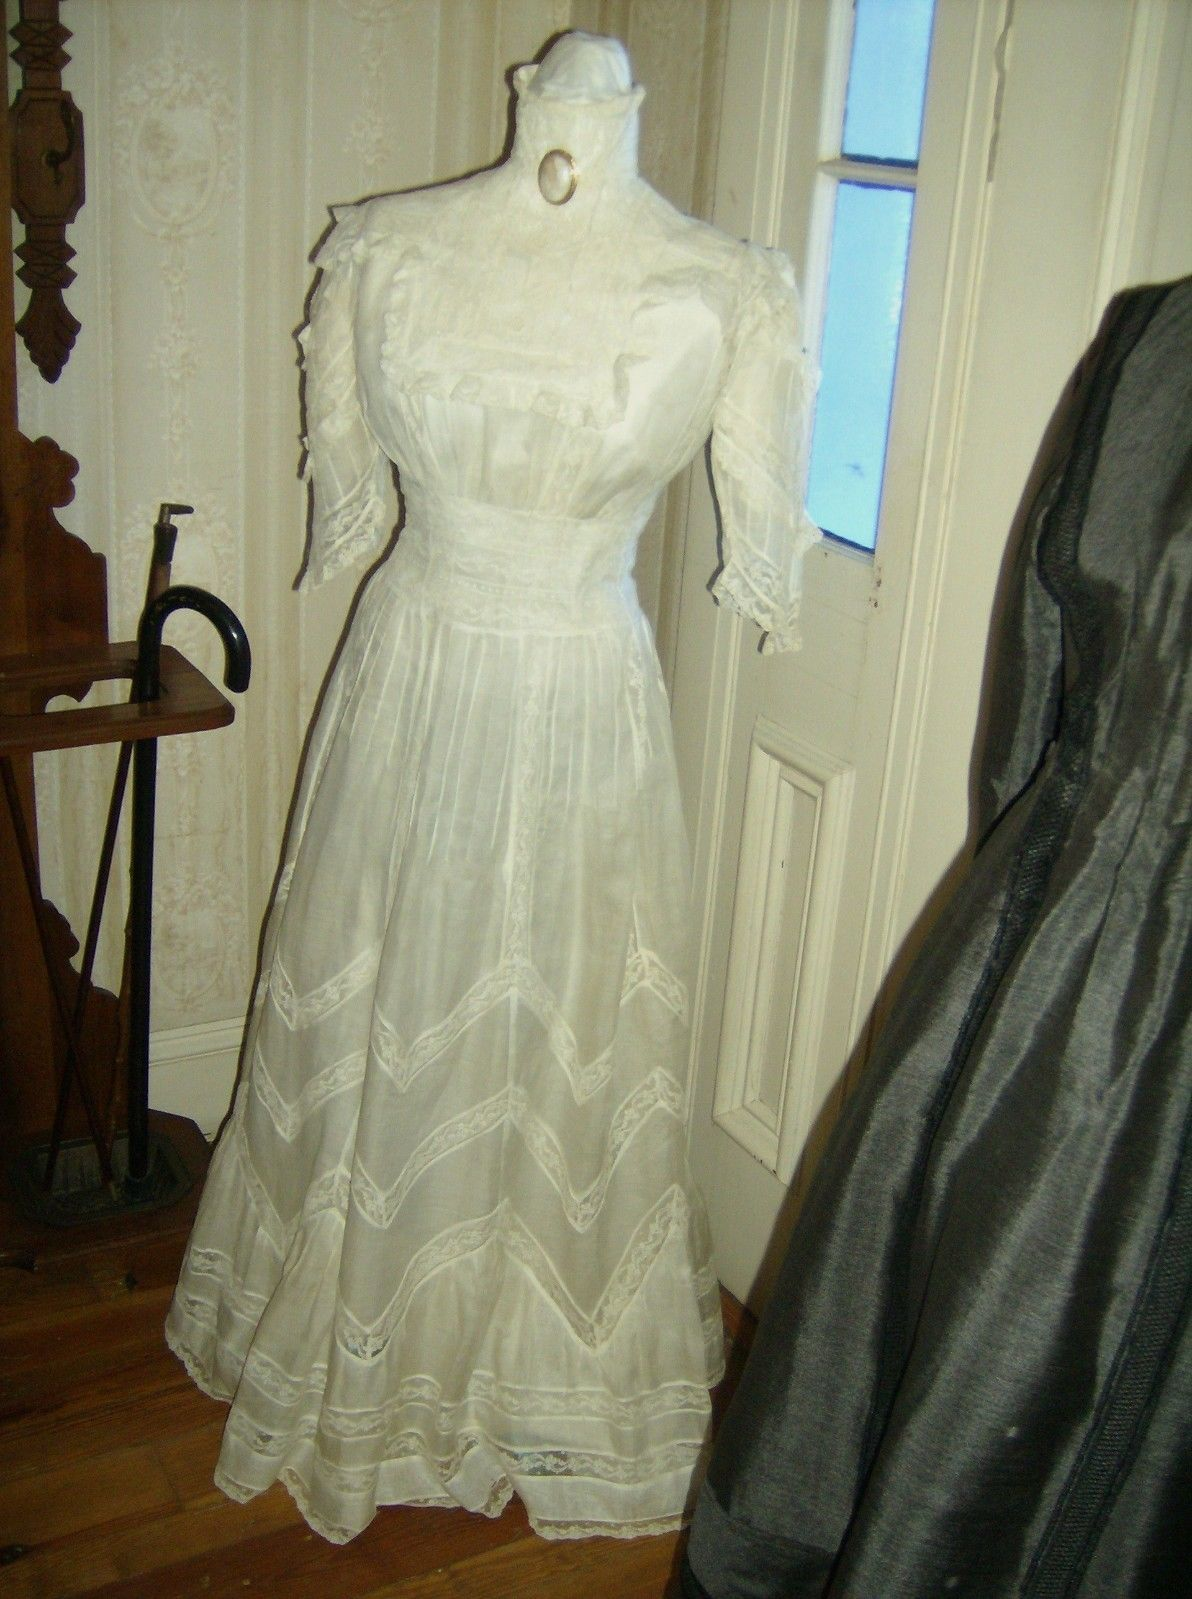 Gorgeous vintage Edwardian white lingerie dress from the early 1900s ...